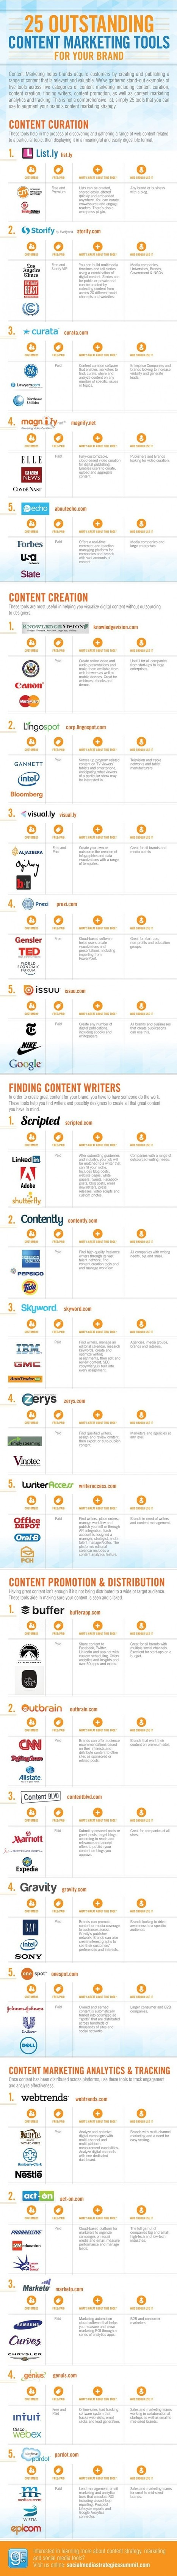 10 Awesome Infographics to Guide your Marketing Plan for 2014 - Search Engine Journal | Digital Marketing | Scoop.it